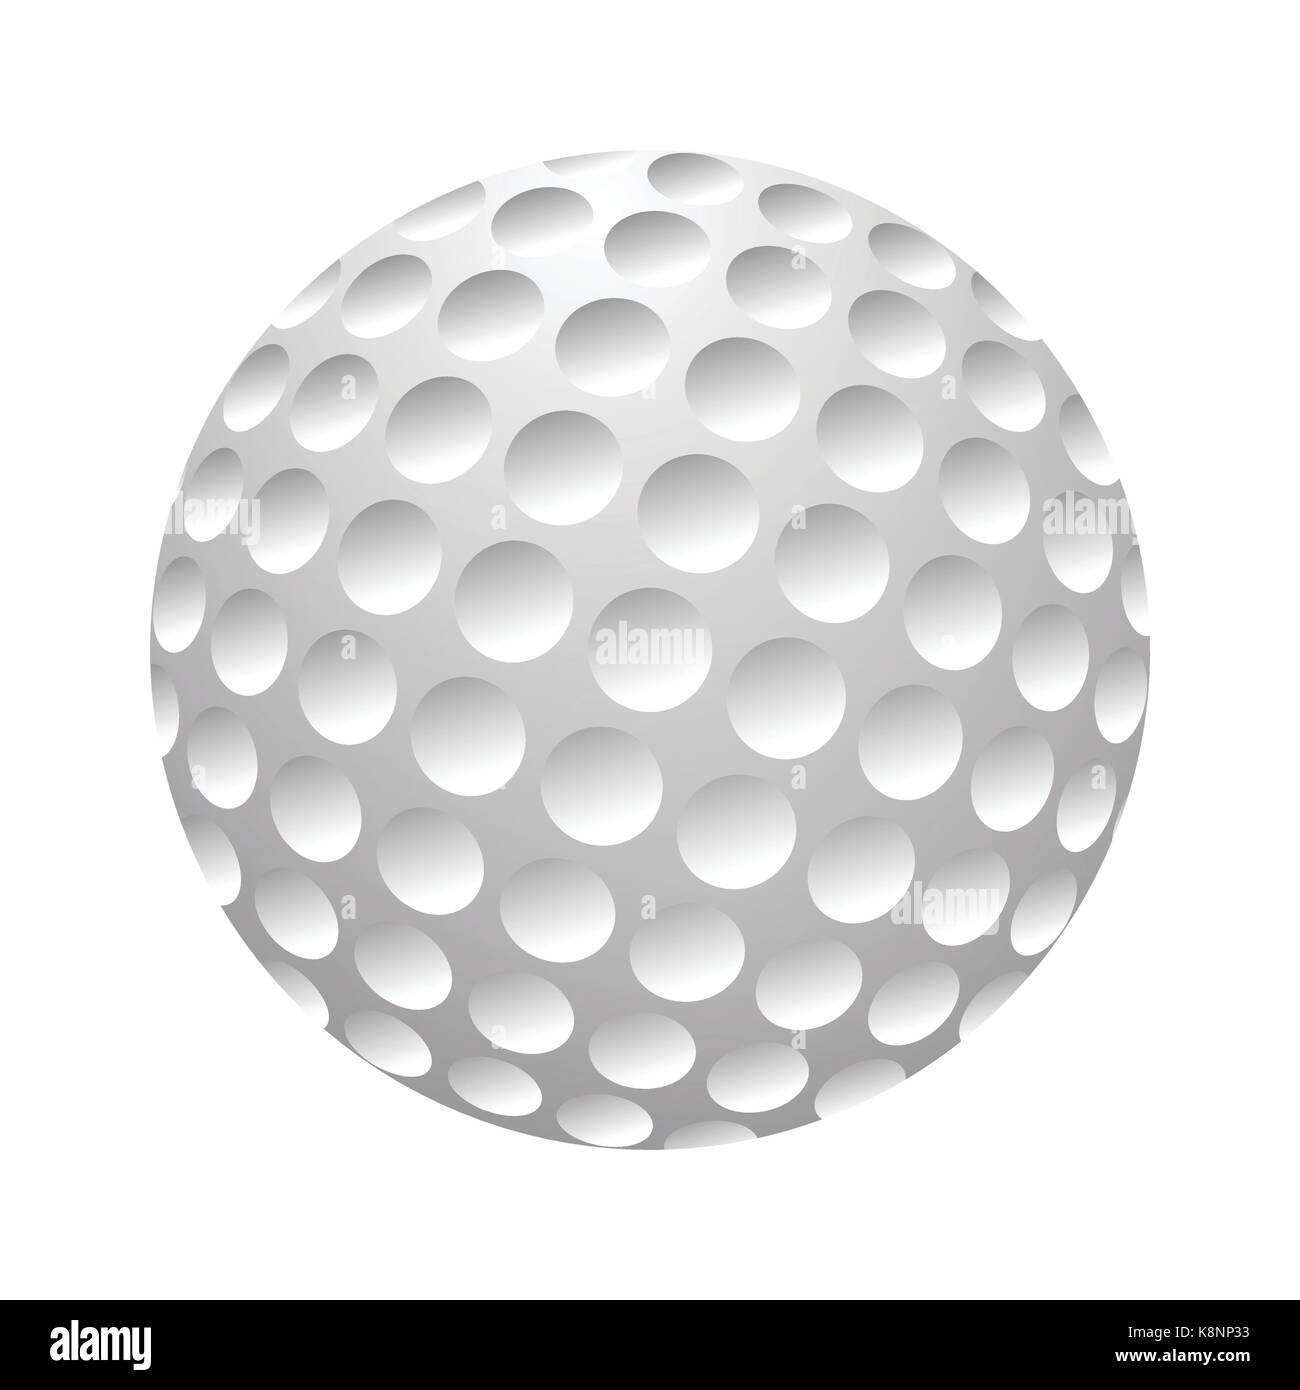 Golfball realistic vector. Image of single golf equipment, ball illustration isolated on white background. - Stock Image